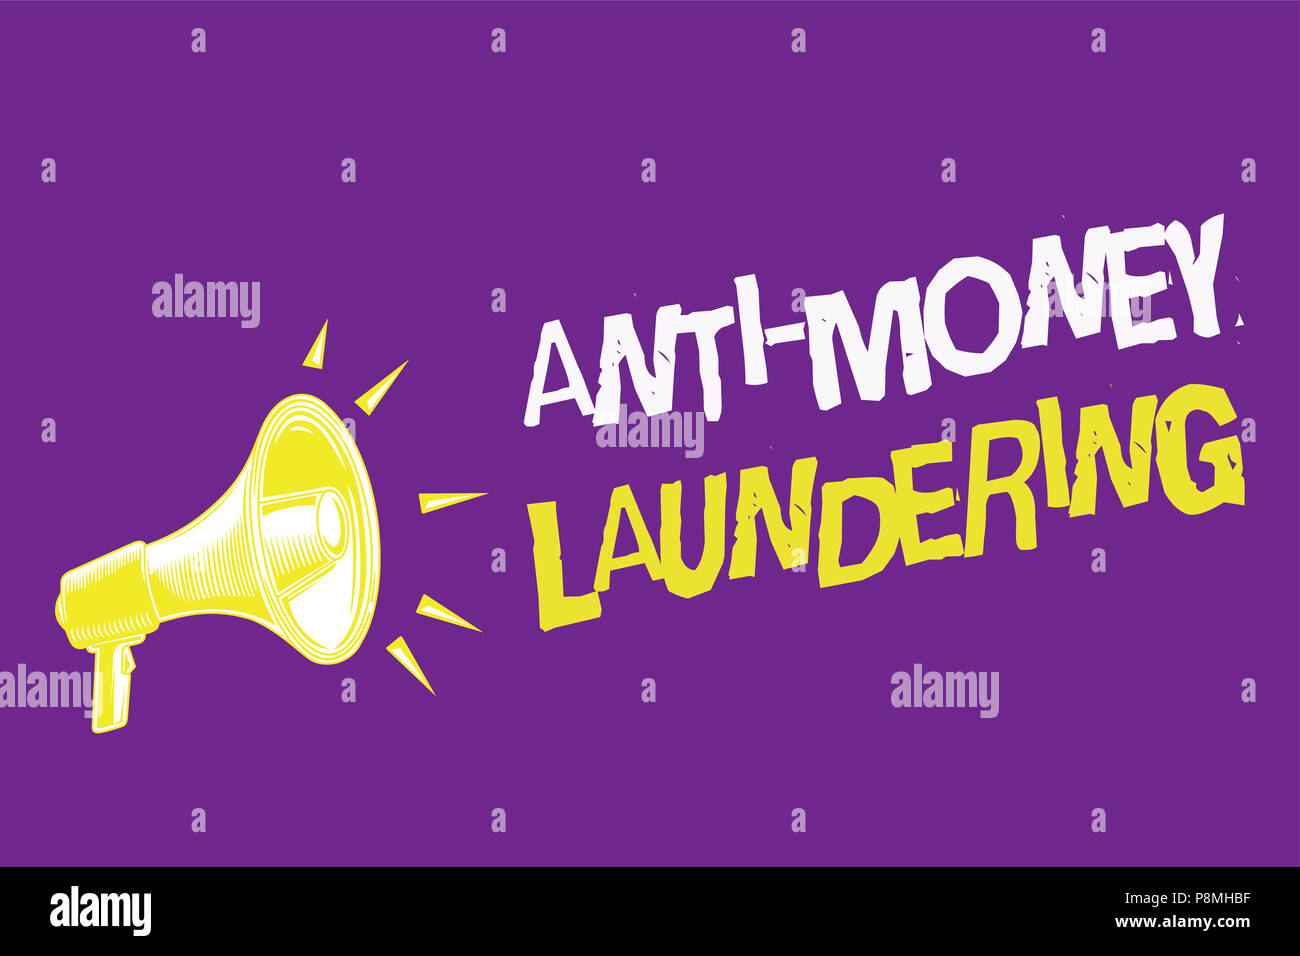 handwriting text anti money laundering concept meaning stop